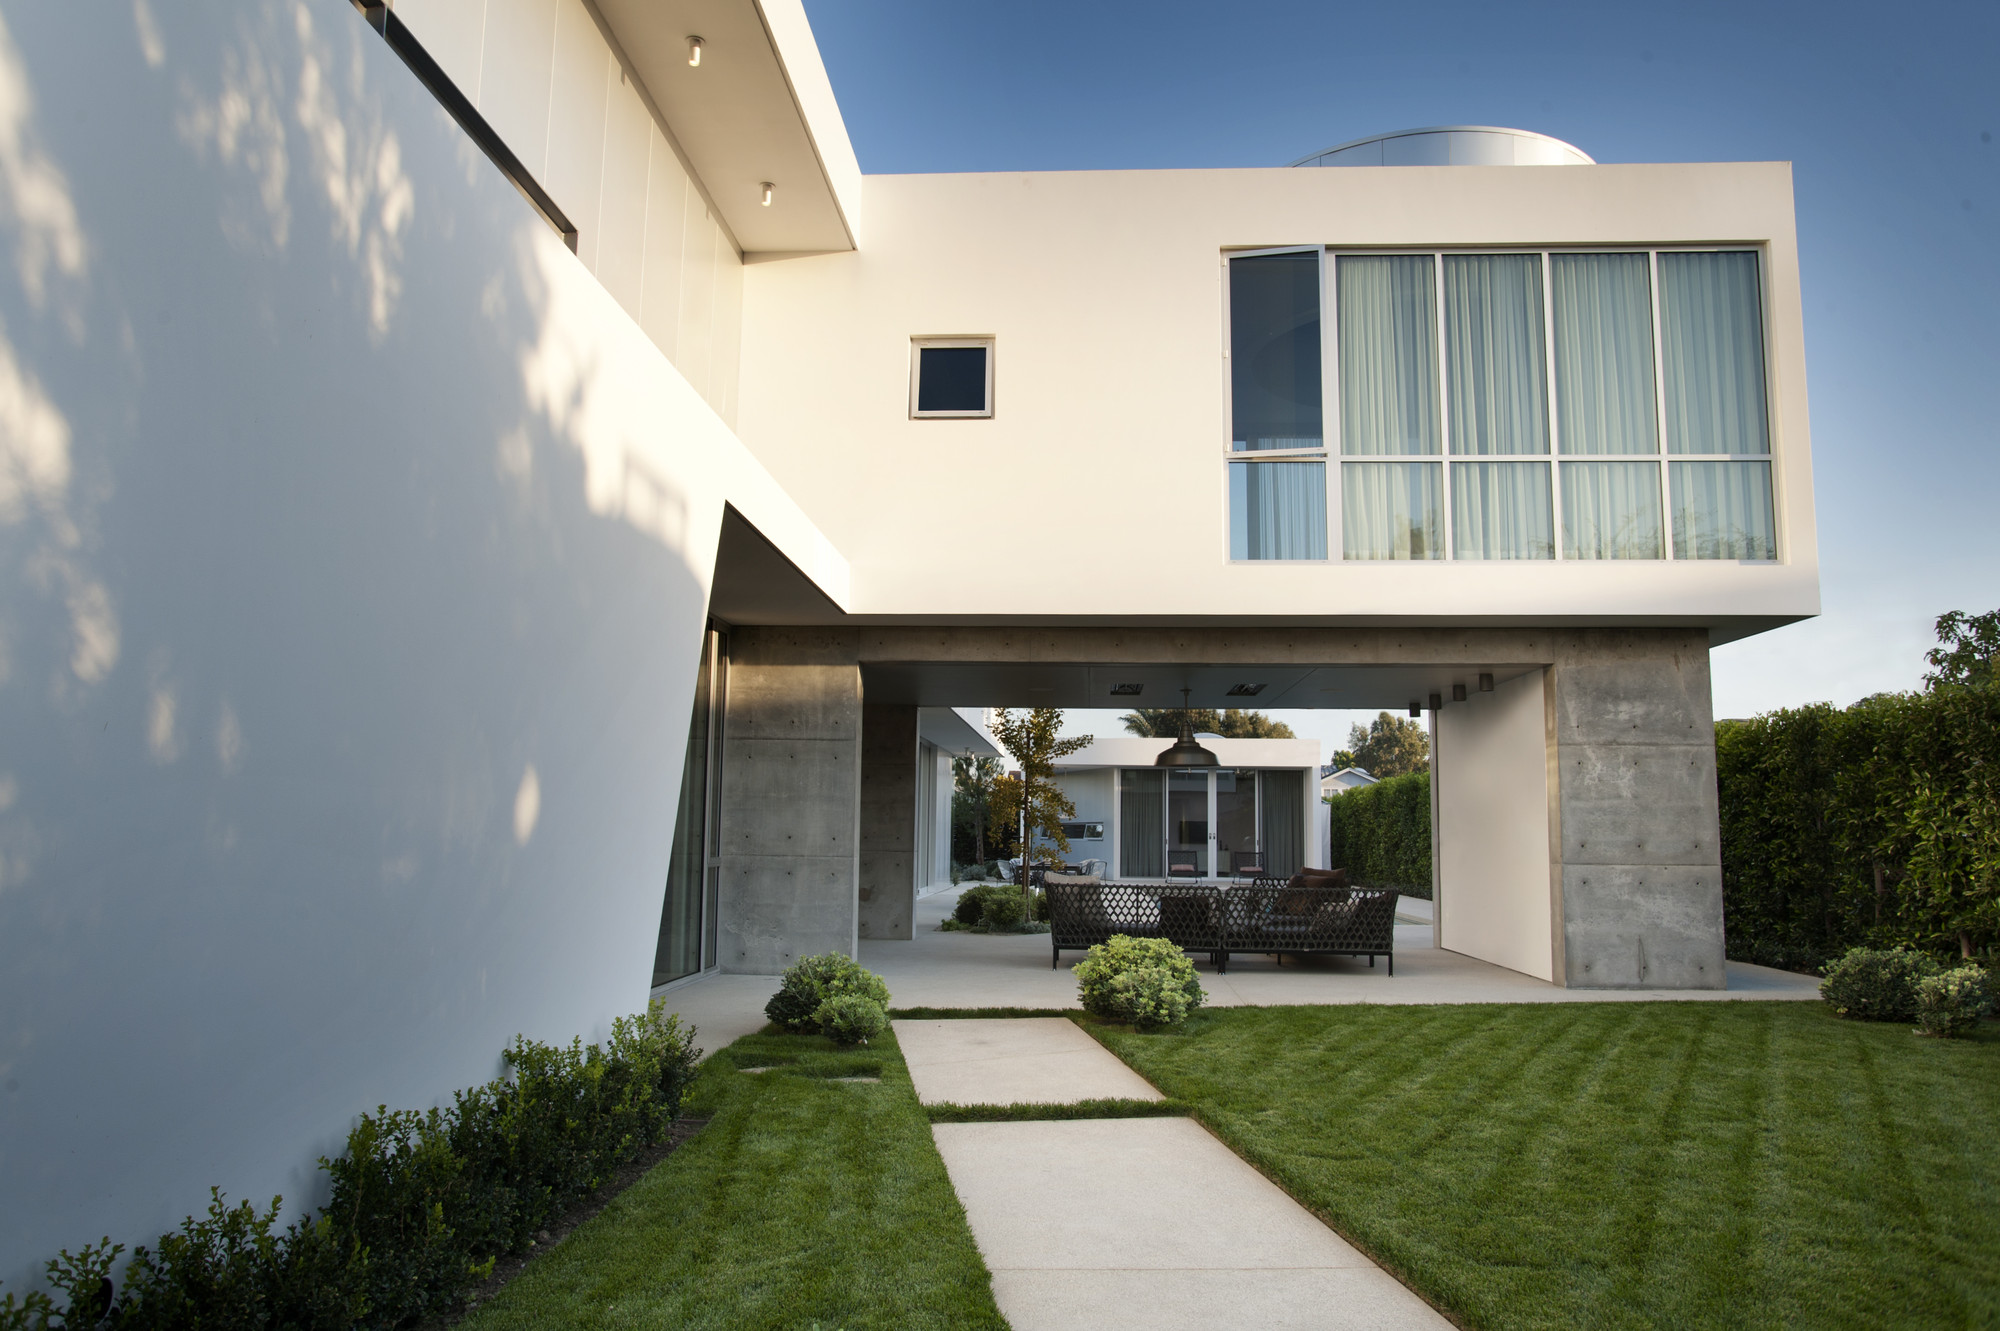 Modern Family Home / Dennis Gibbens rchitects rchDaily - ^